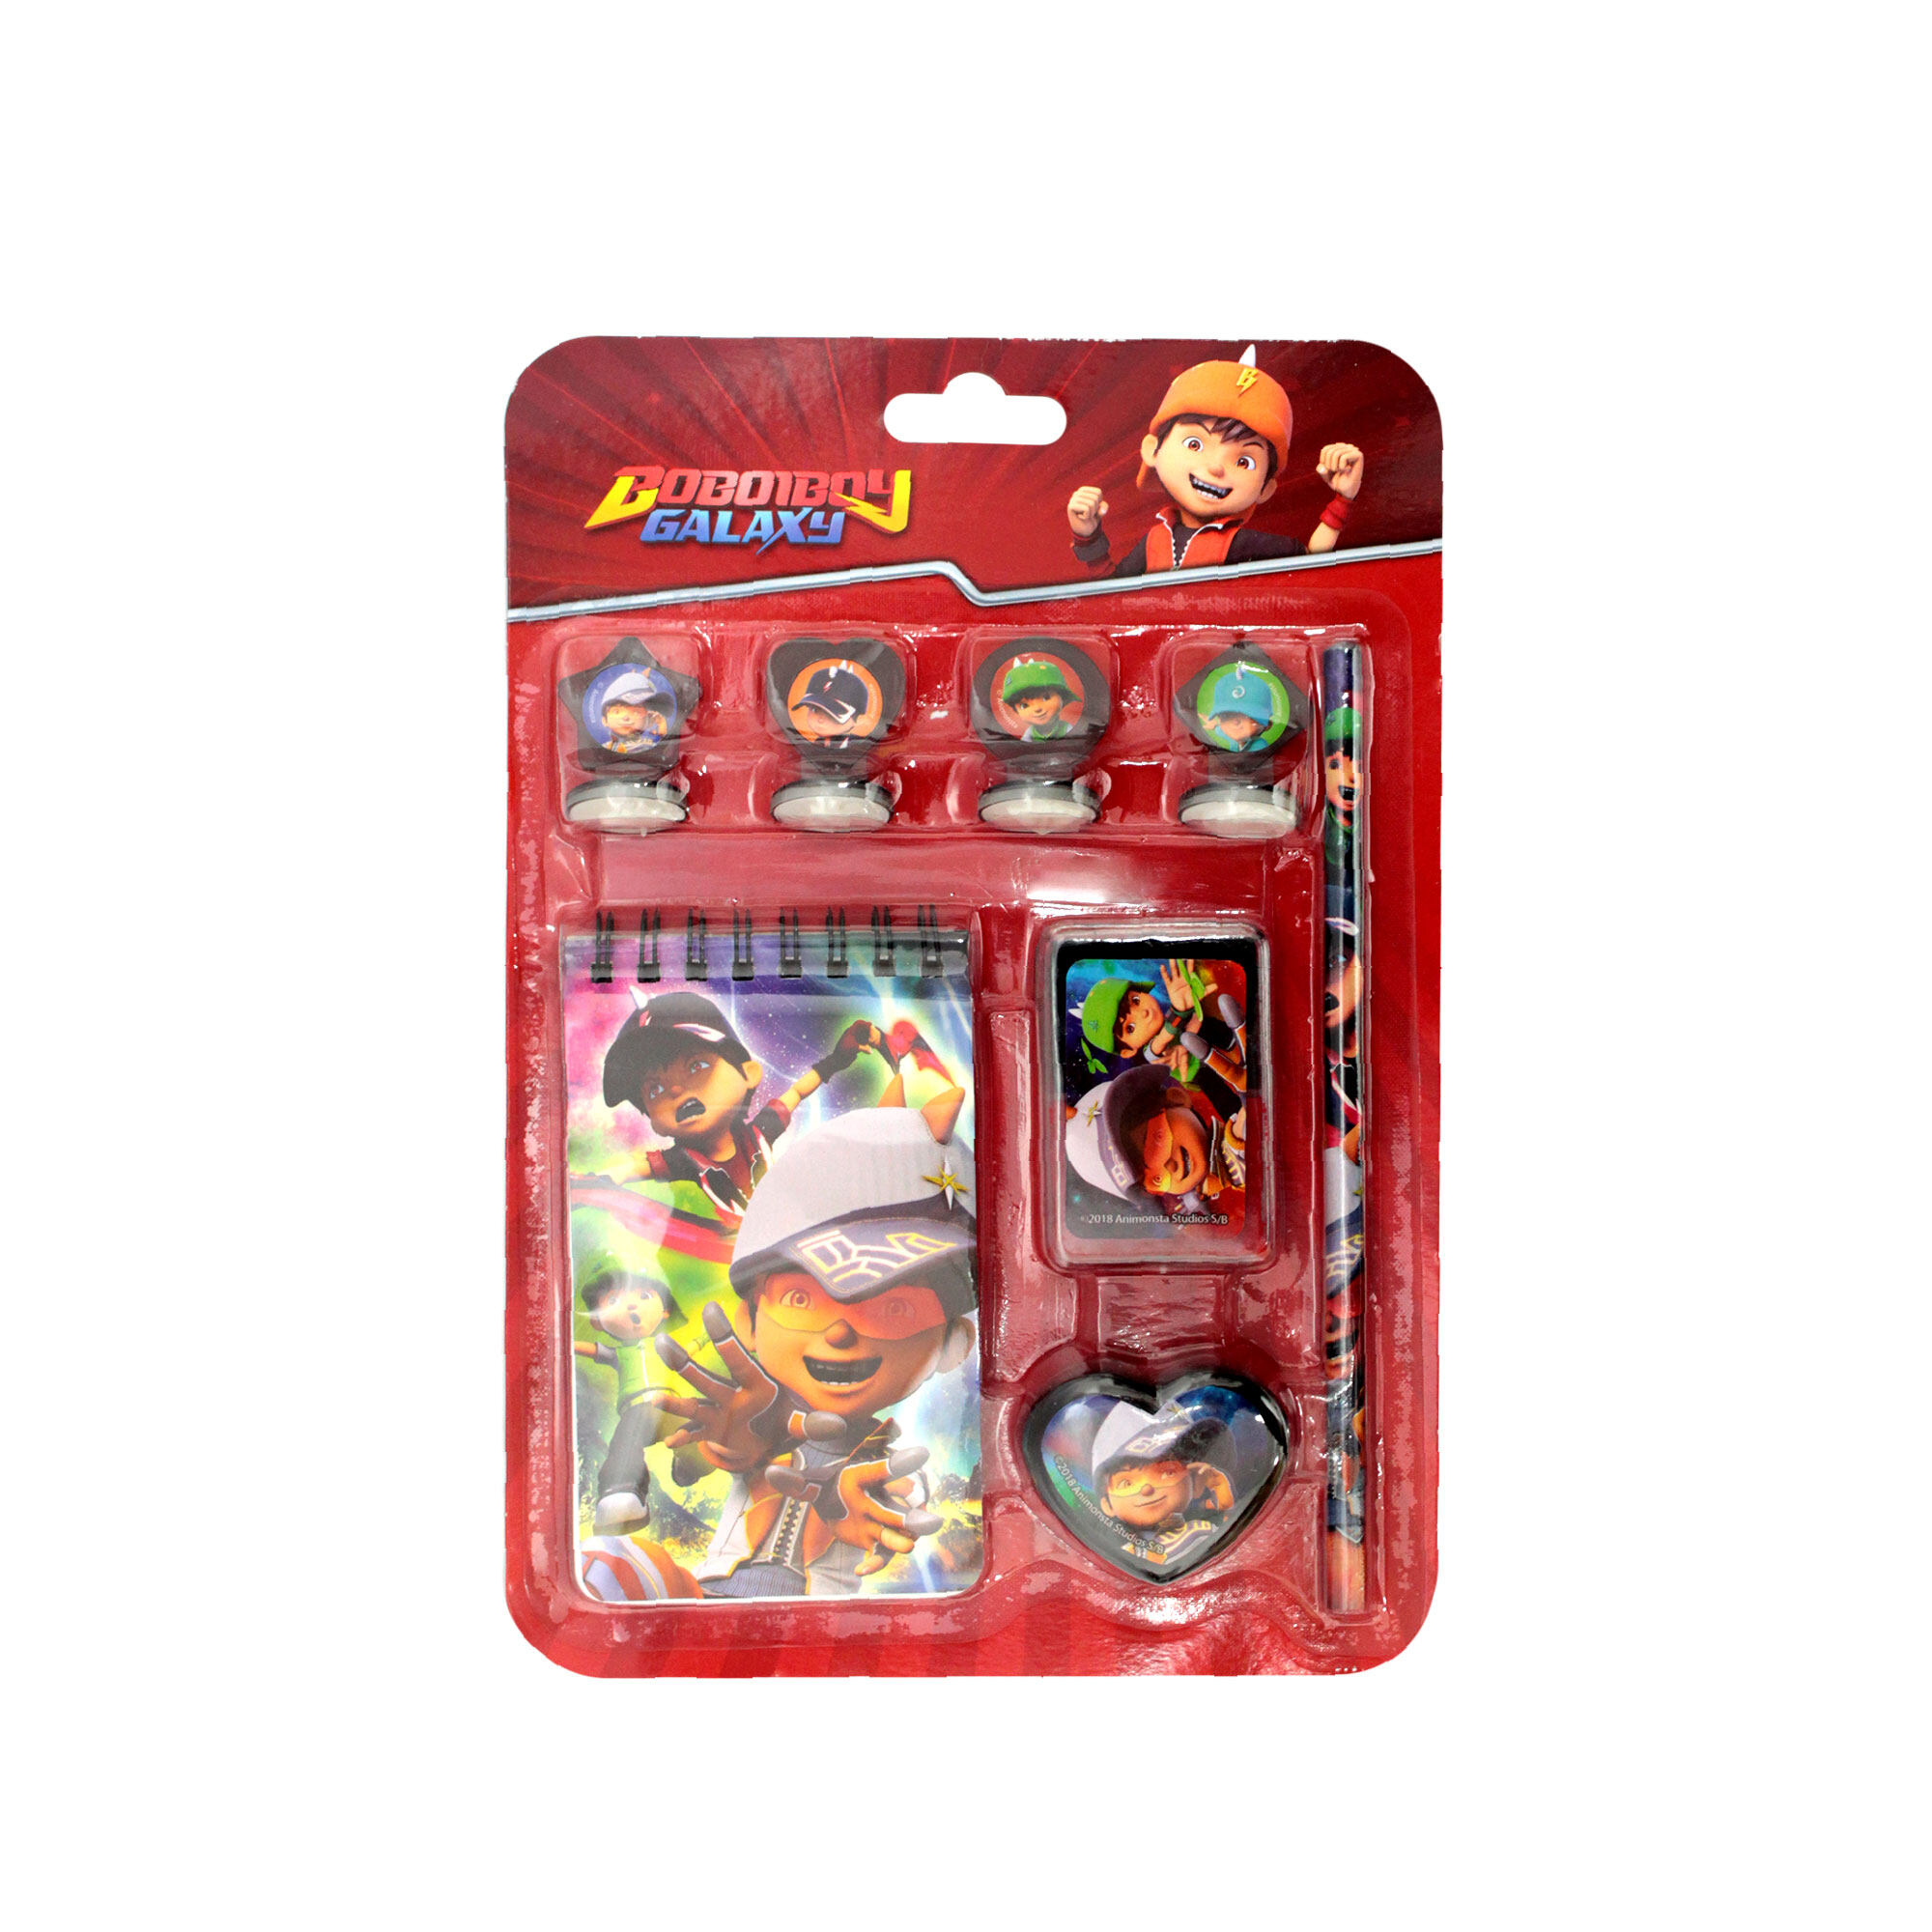 Boboiboy 8pcs Stamper Set -  Red Colour